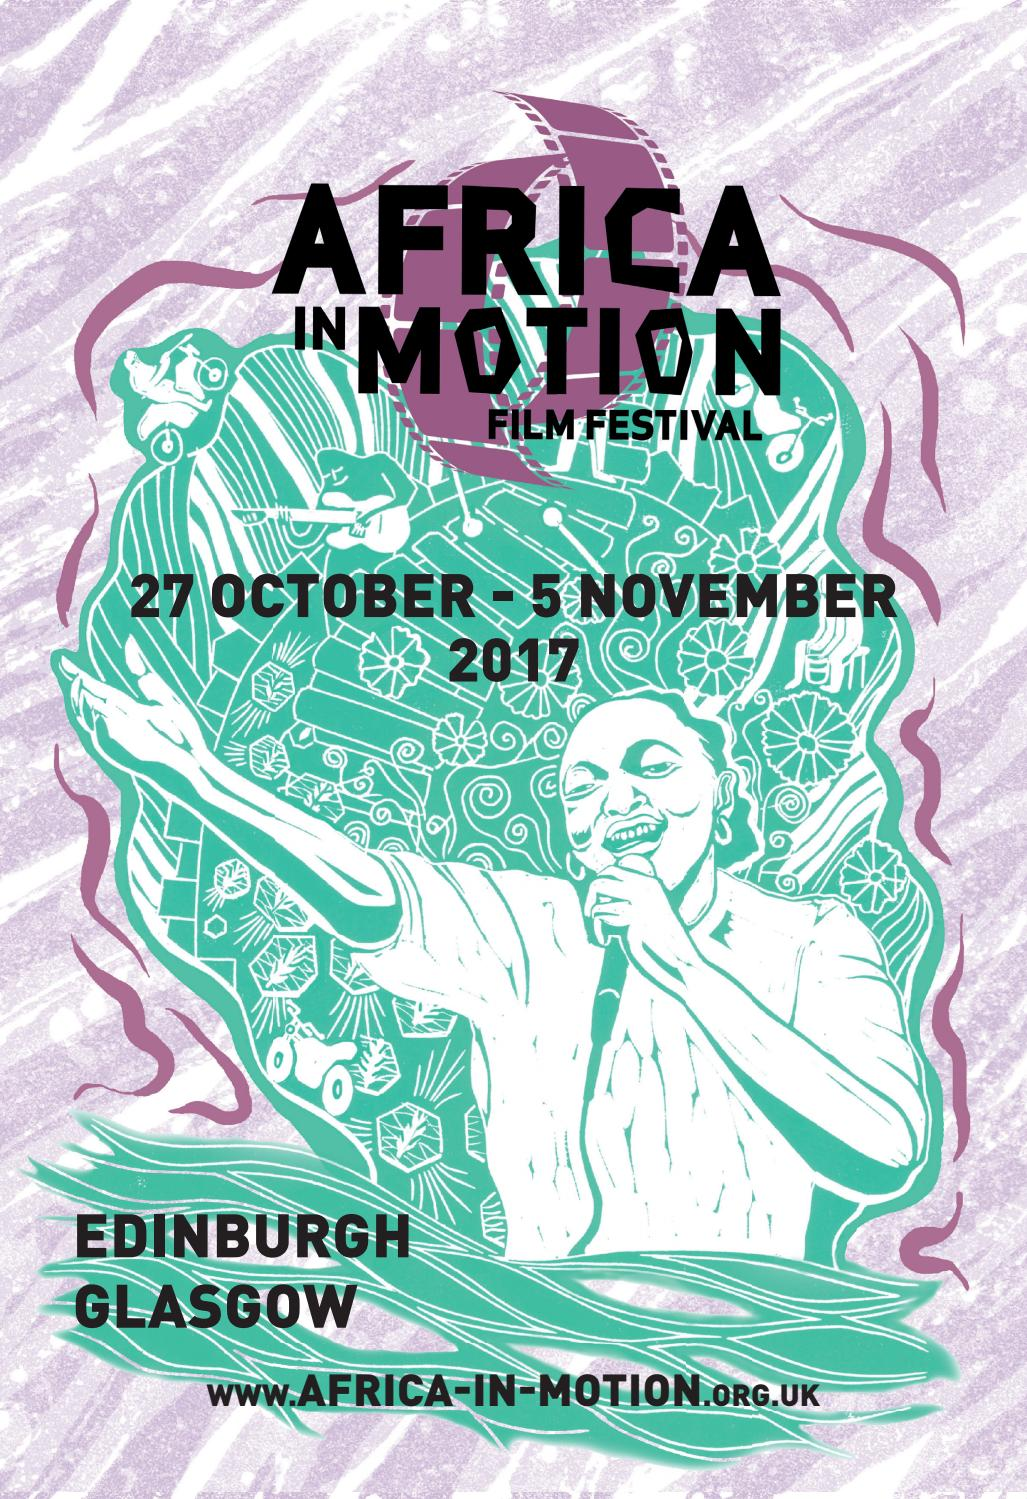 Africa in Motion Film Festival 2017 Programme by Africa in Motion ...